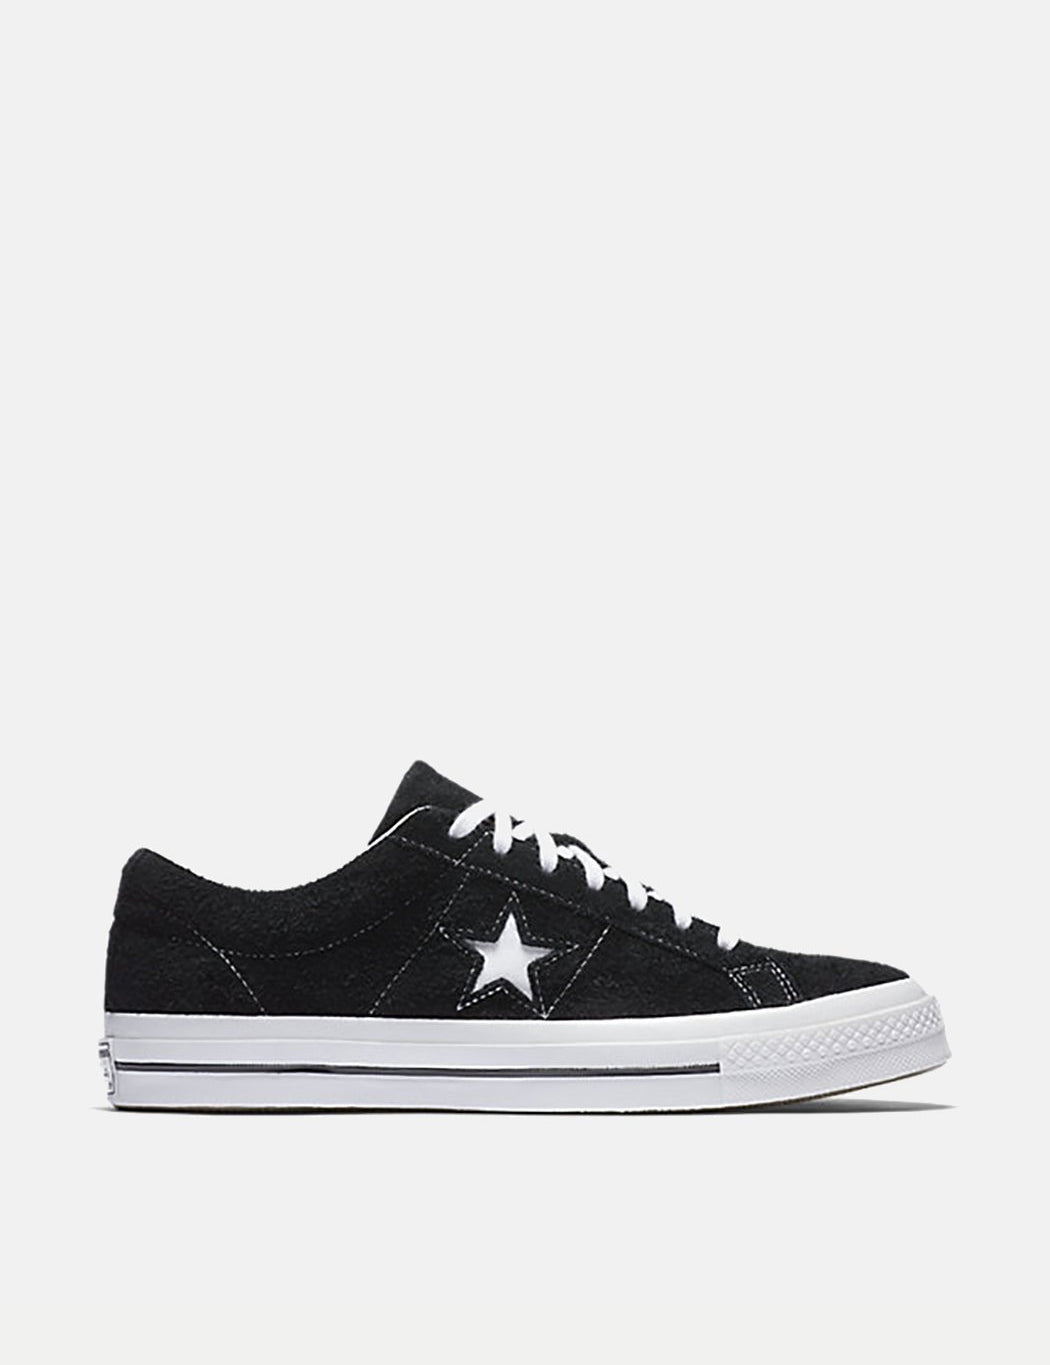 Converse One Star Ox Low Suede (158369C) - Black White  99cd04a7a